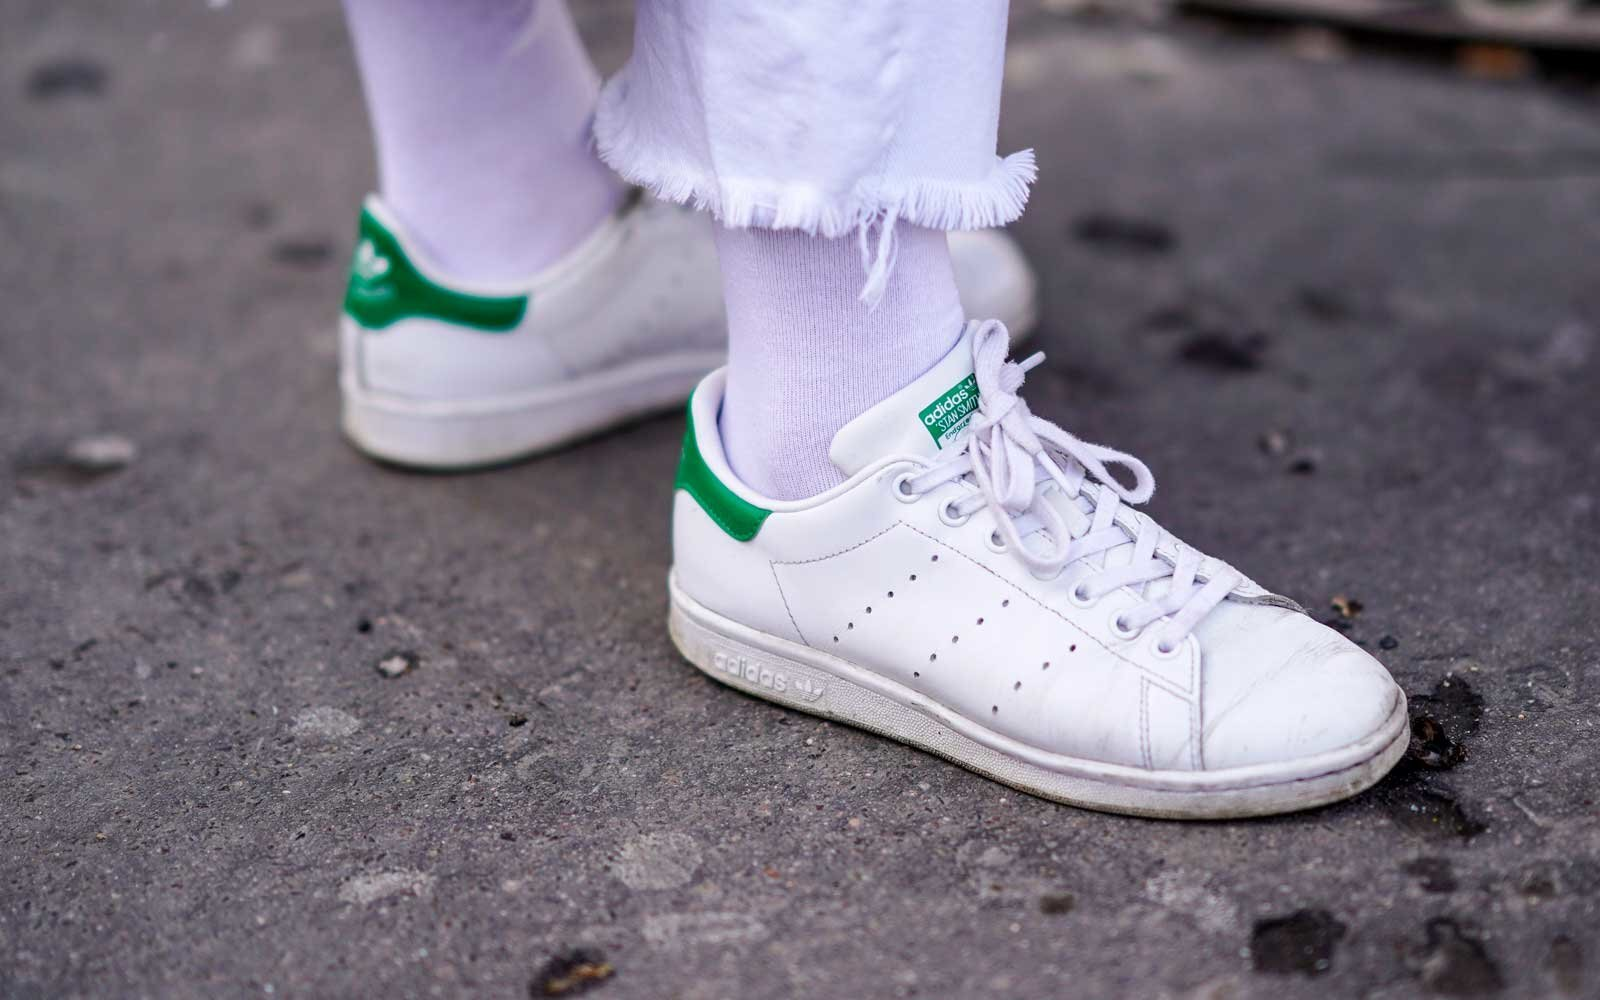 554abad63ce0fe 15 White Sneakers for Women That Go With Everything